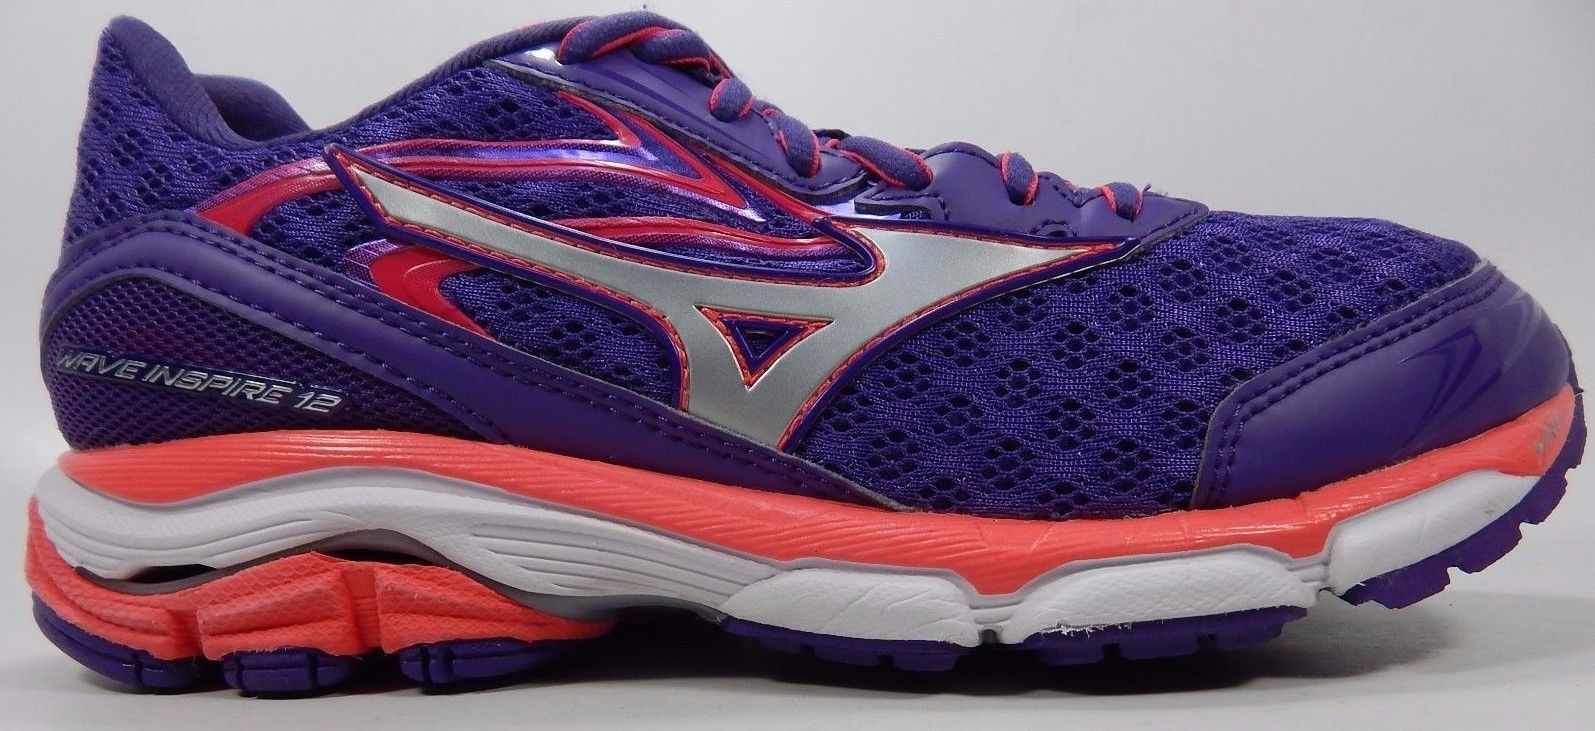 Mizuno Wave Inspire 12 Women's Running Shoes Size US 7 M (B) EU 37 Purple Pink